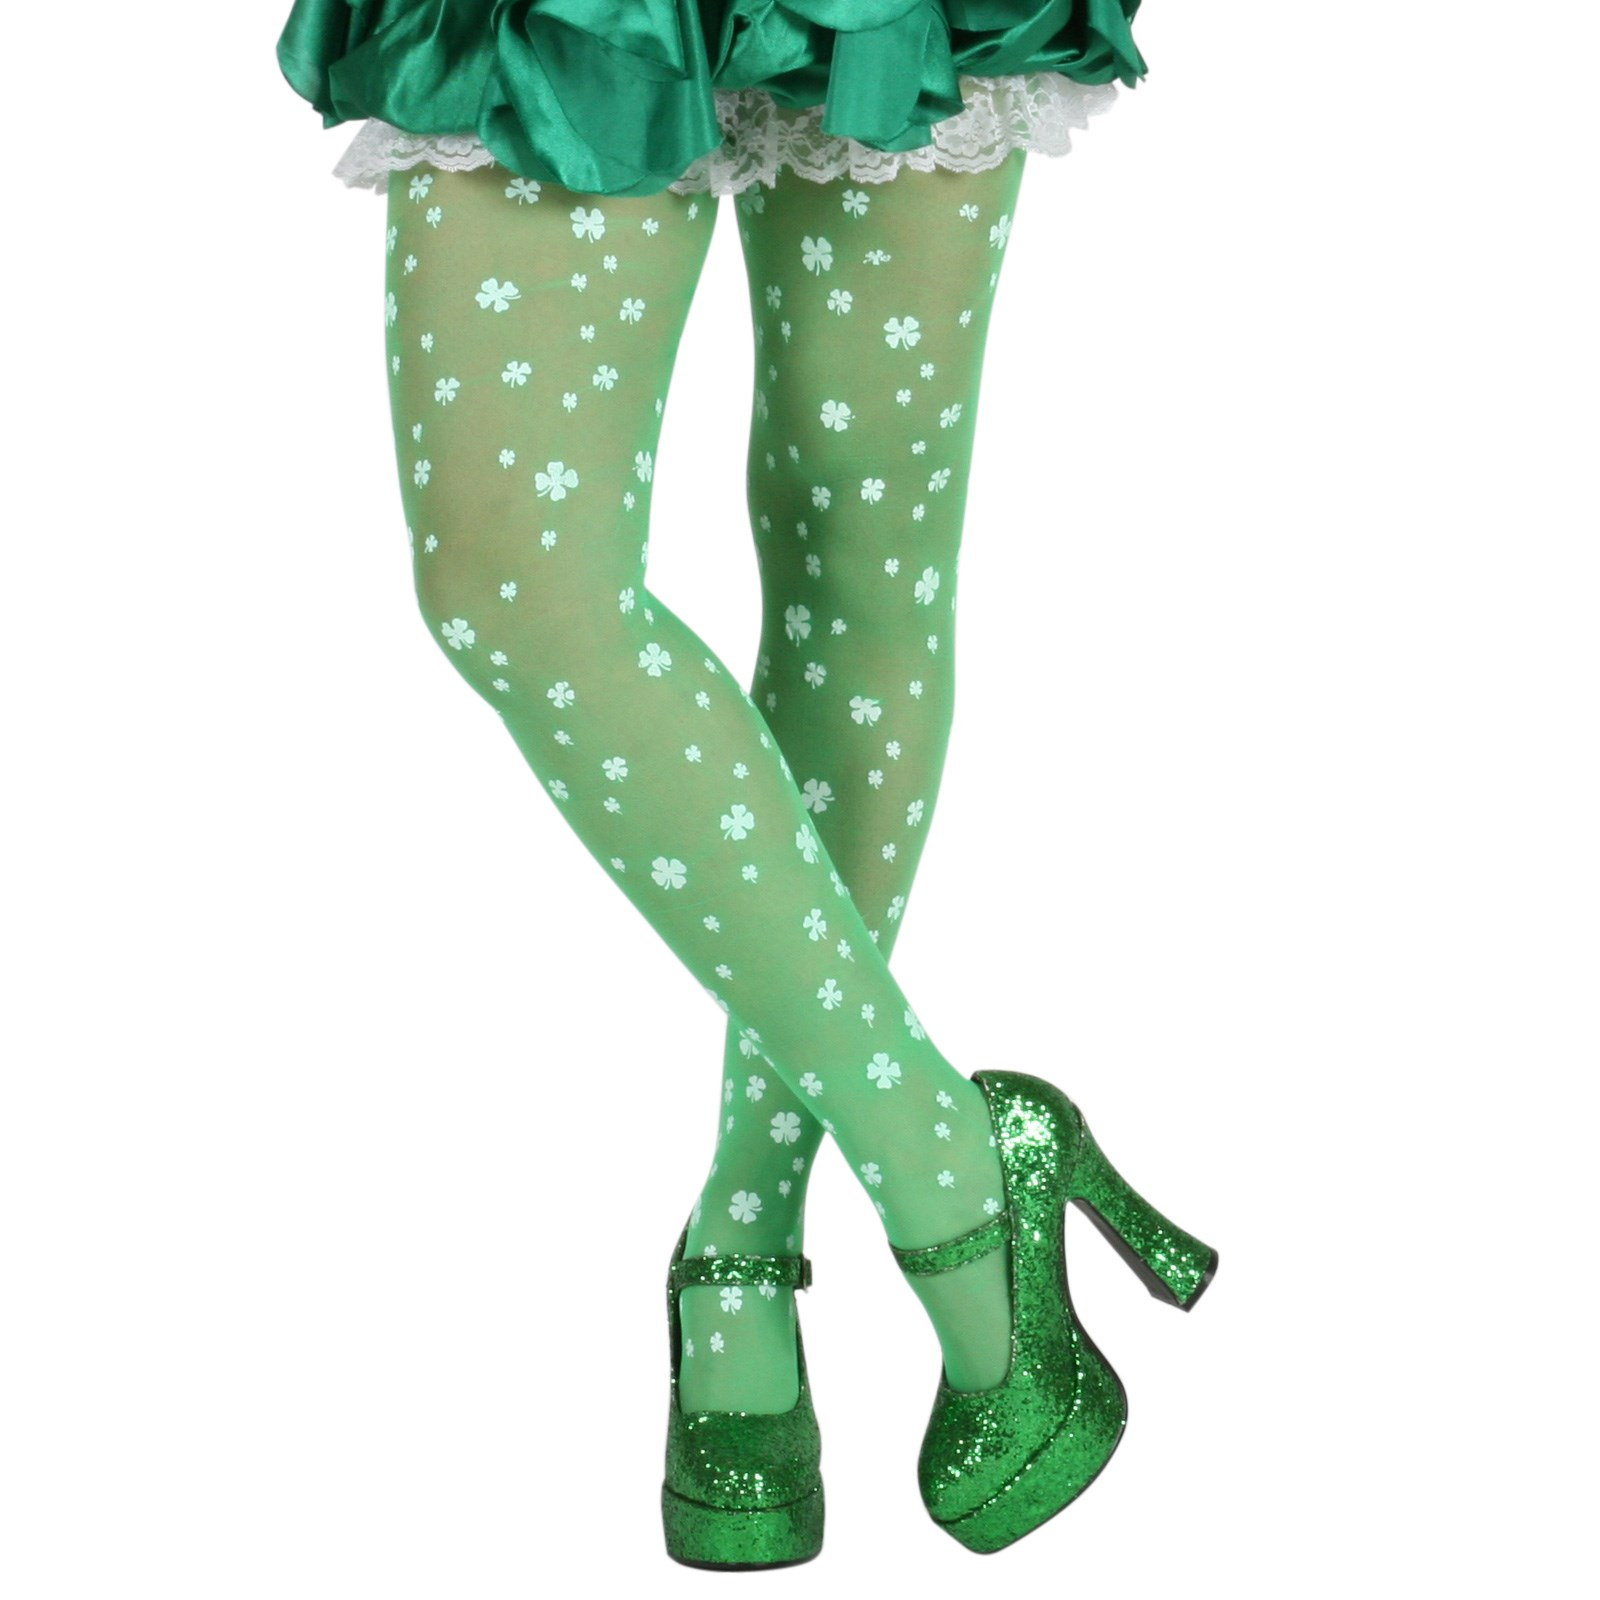 Green and White St. Patrick's Day Shamrock Tights